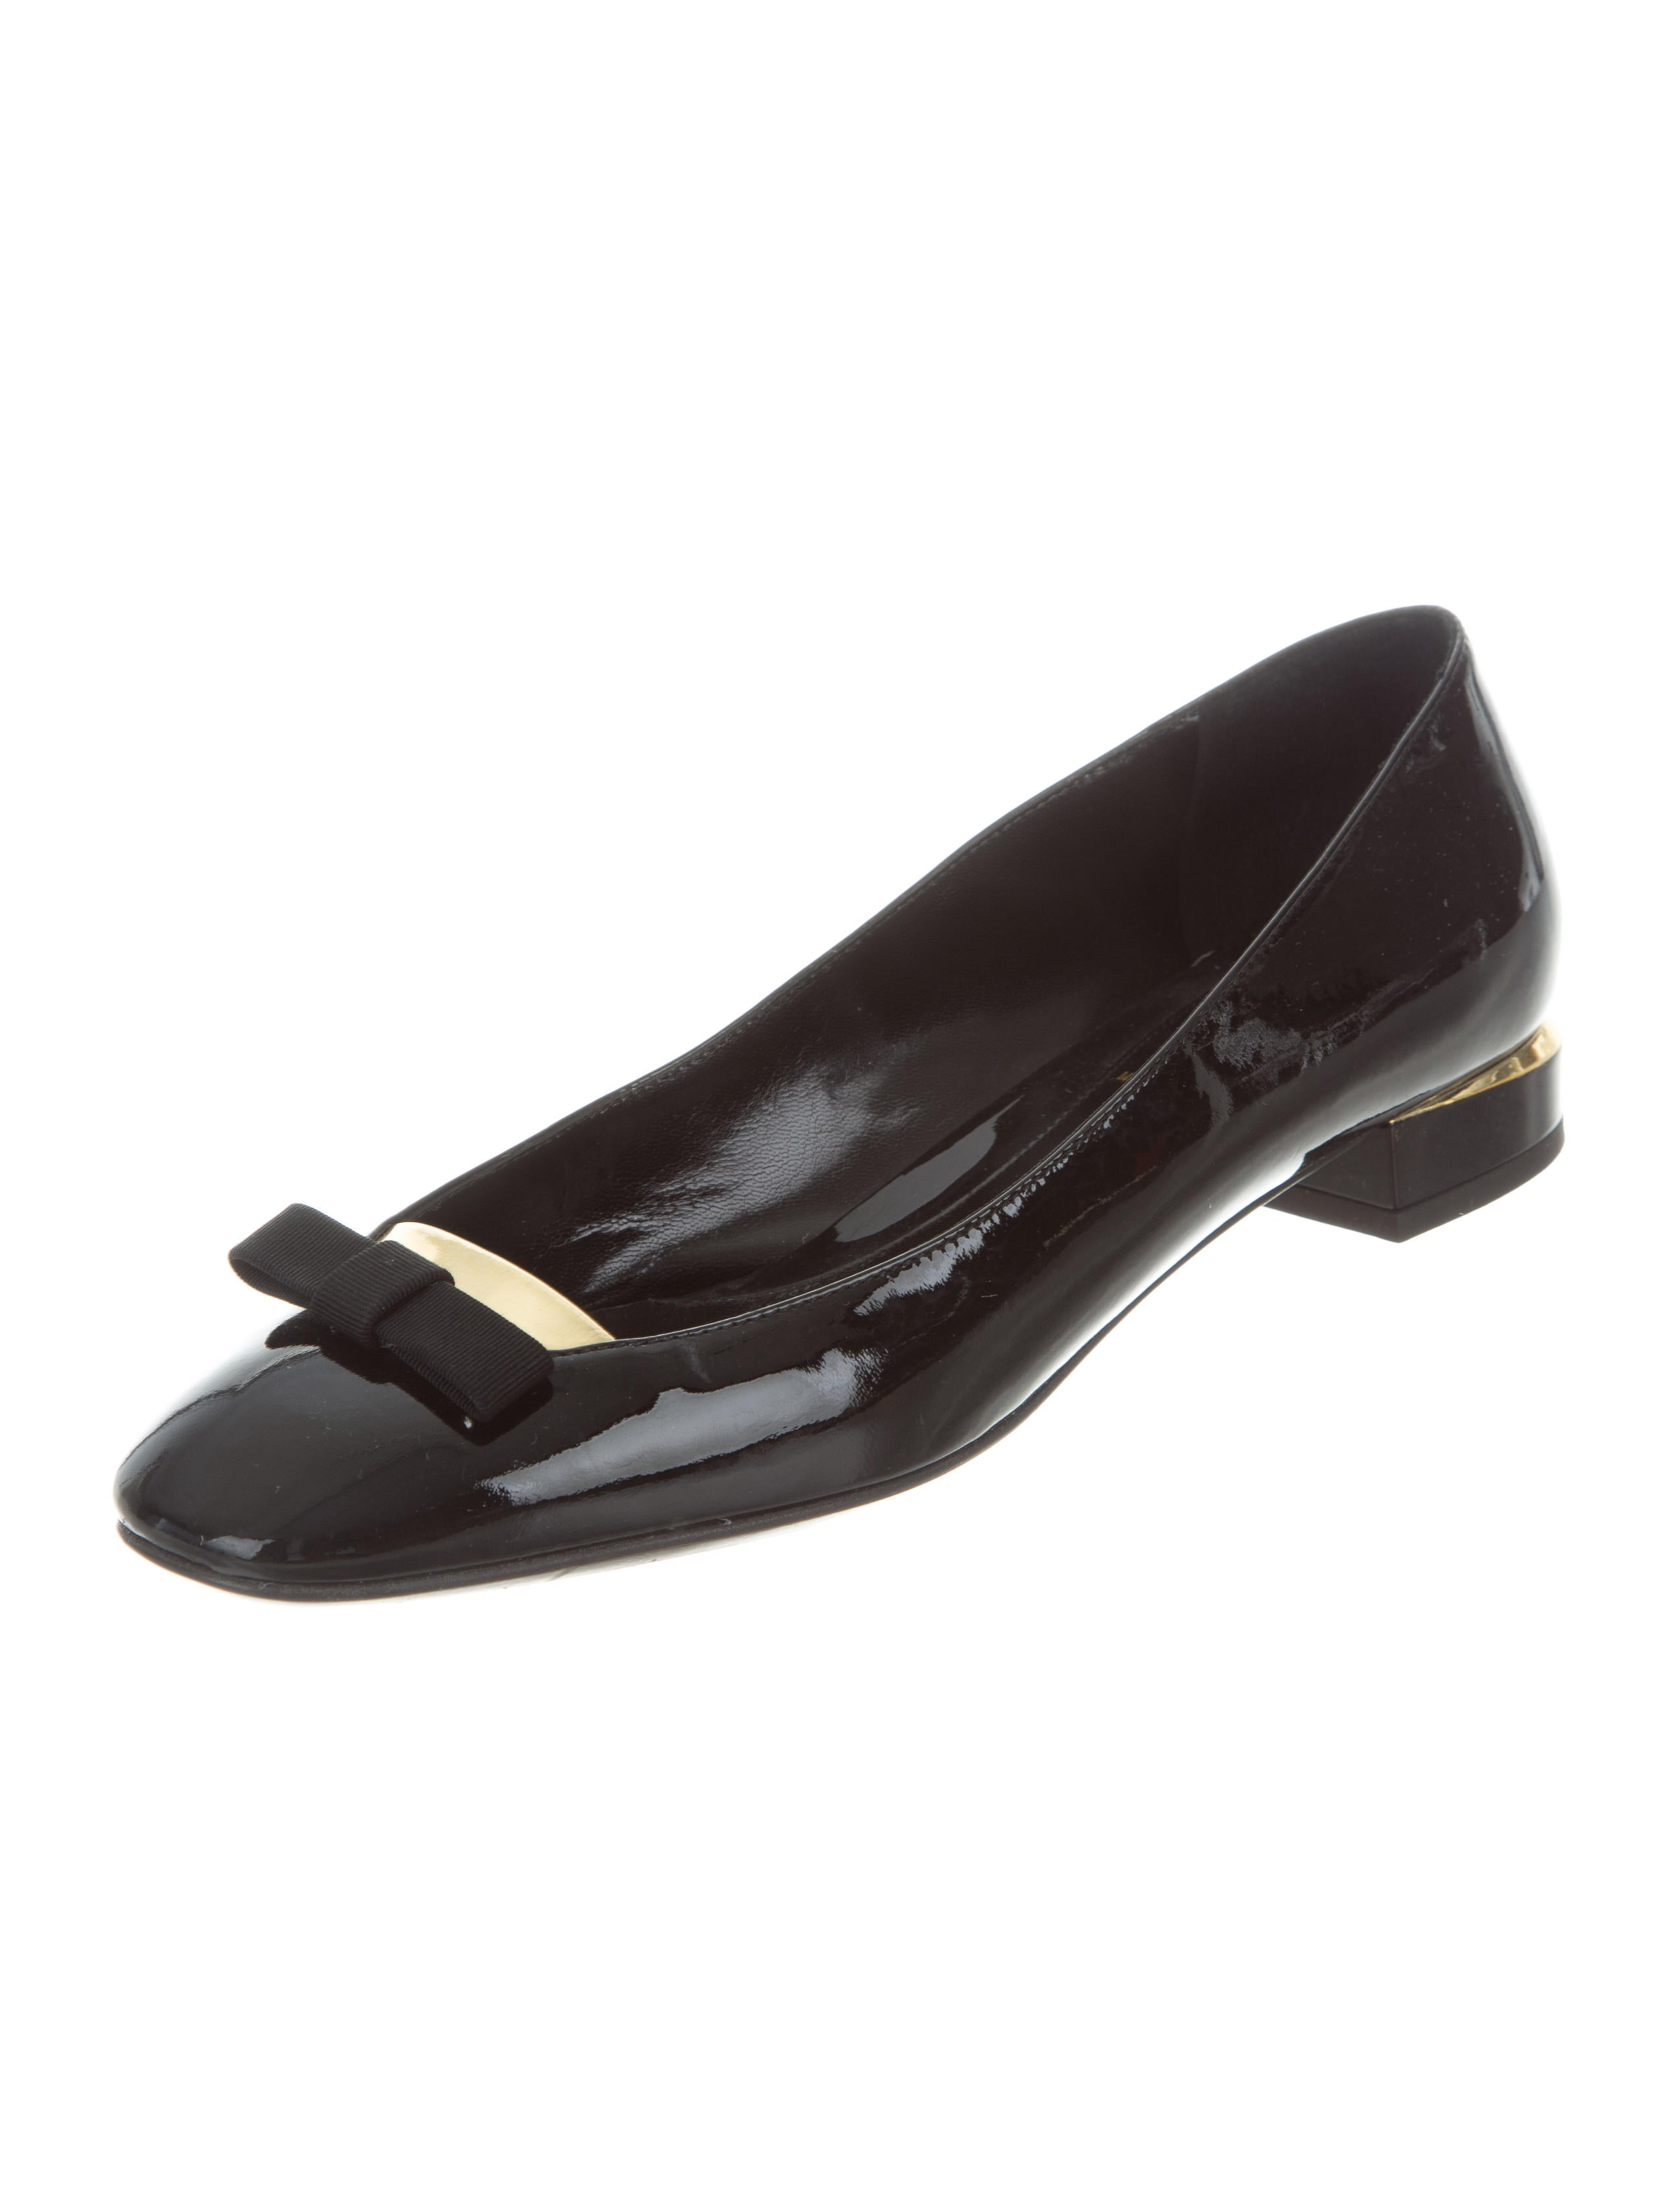 fendi patent leather flats shoes fen59664 the realreal